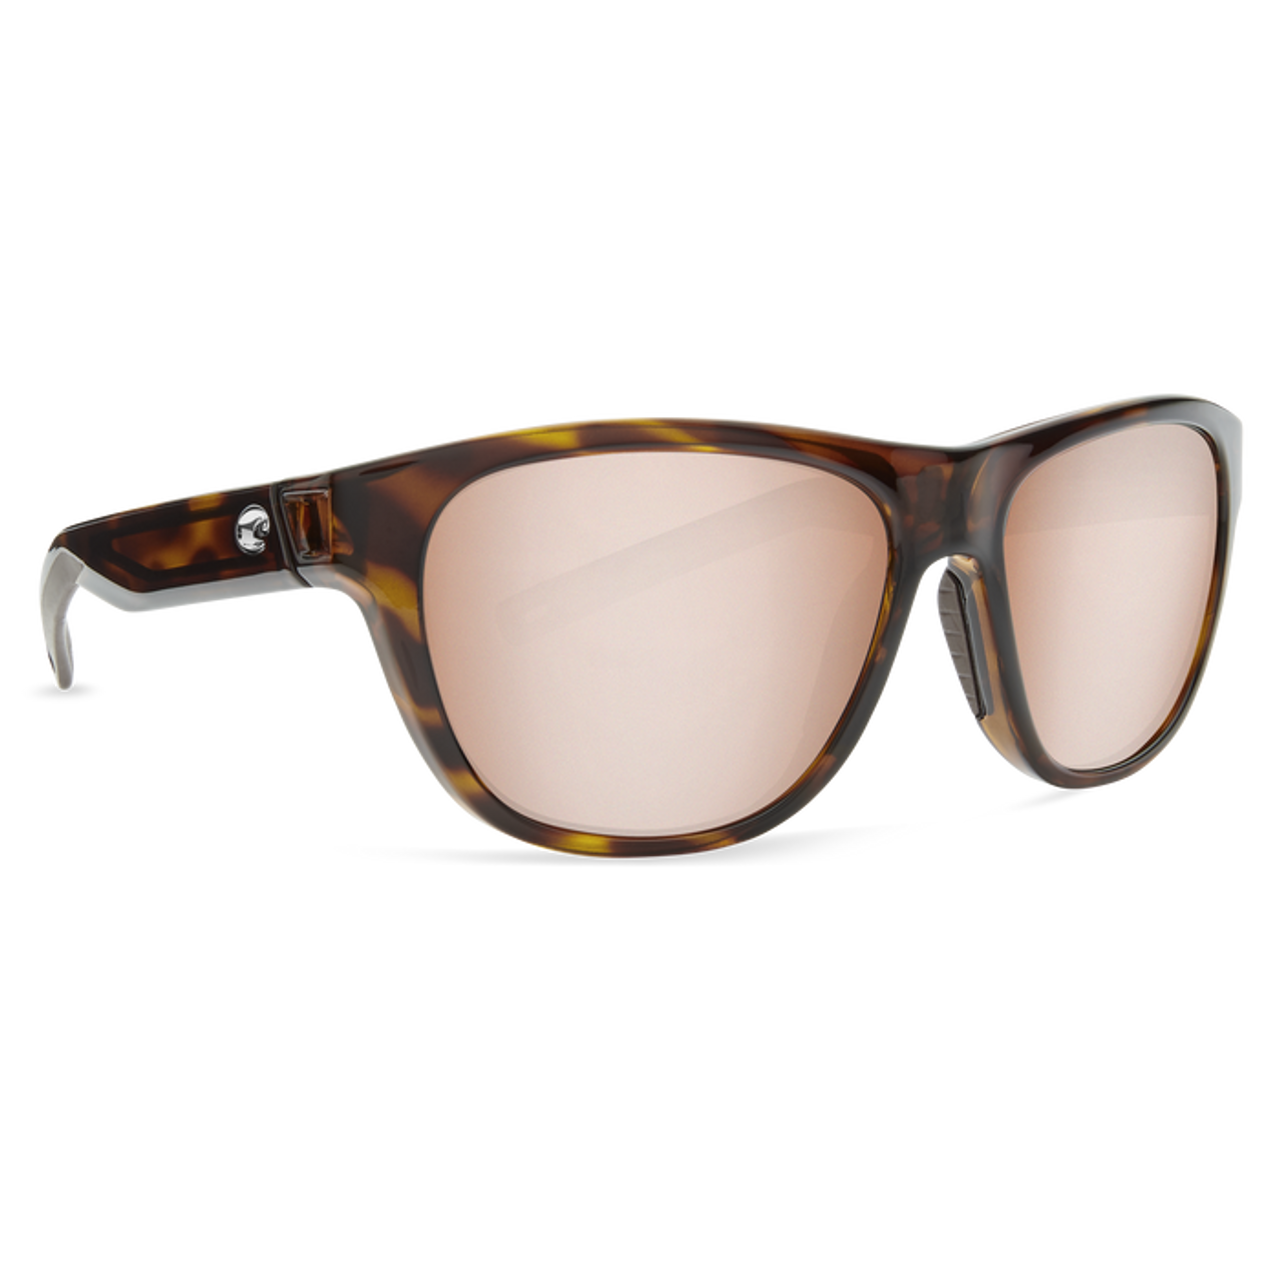 da39ee6ab4 Costa Sunglasses - Bayside - Shiny Tort Silver Mirror Copper - Surf and Dirt